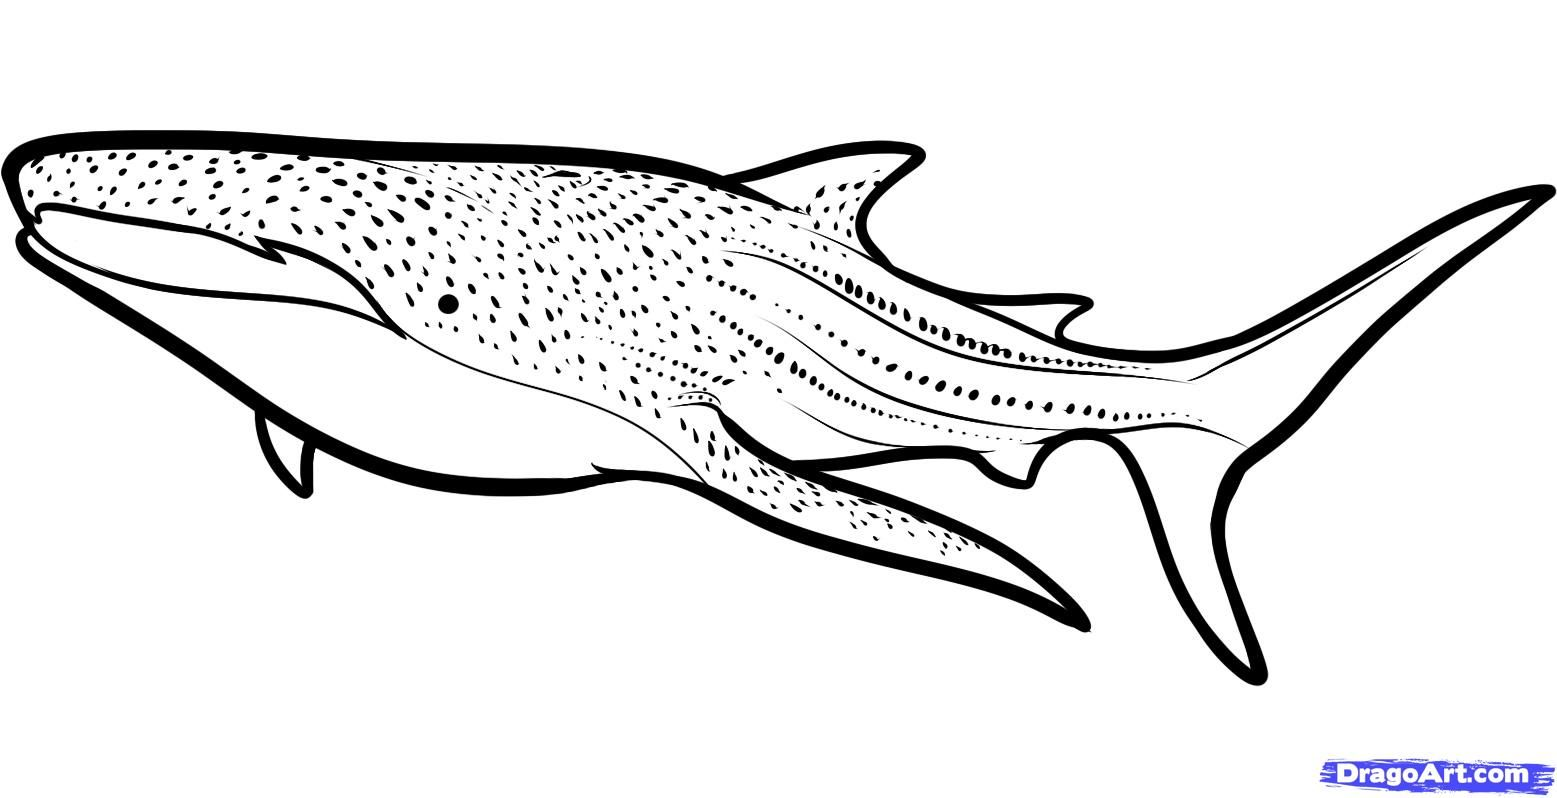 How To Draw A Whale Shark Whale Shark Step 6 1 000000089579 5 Jpg